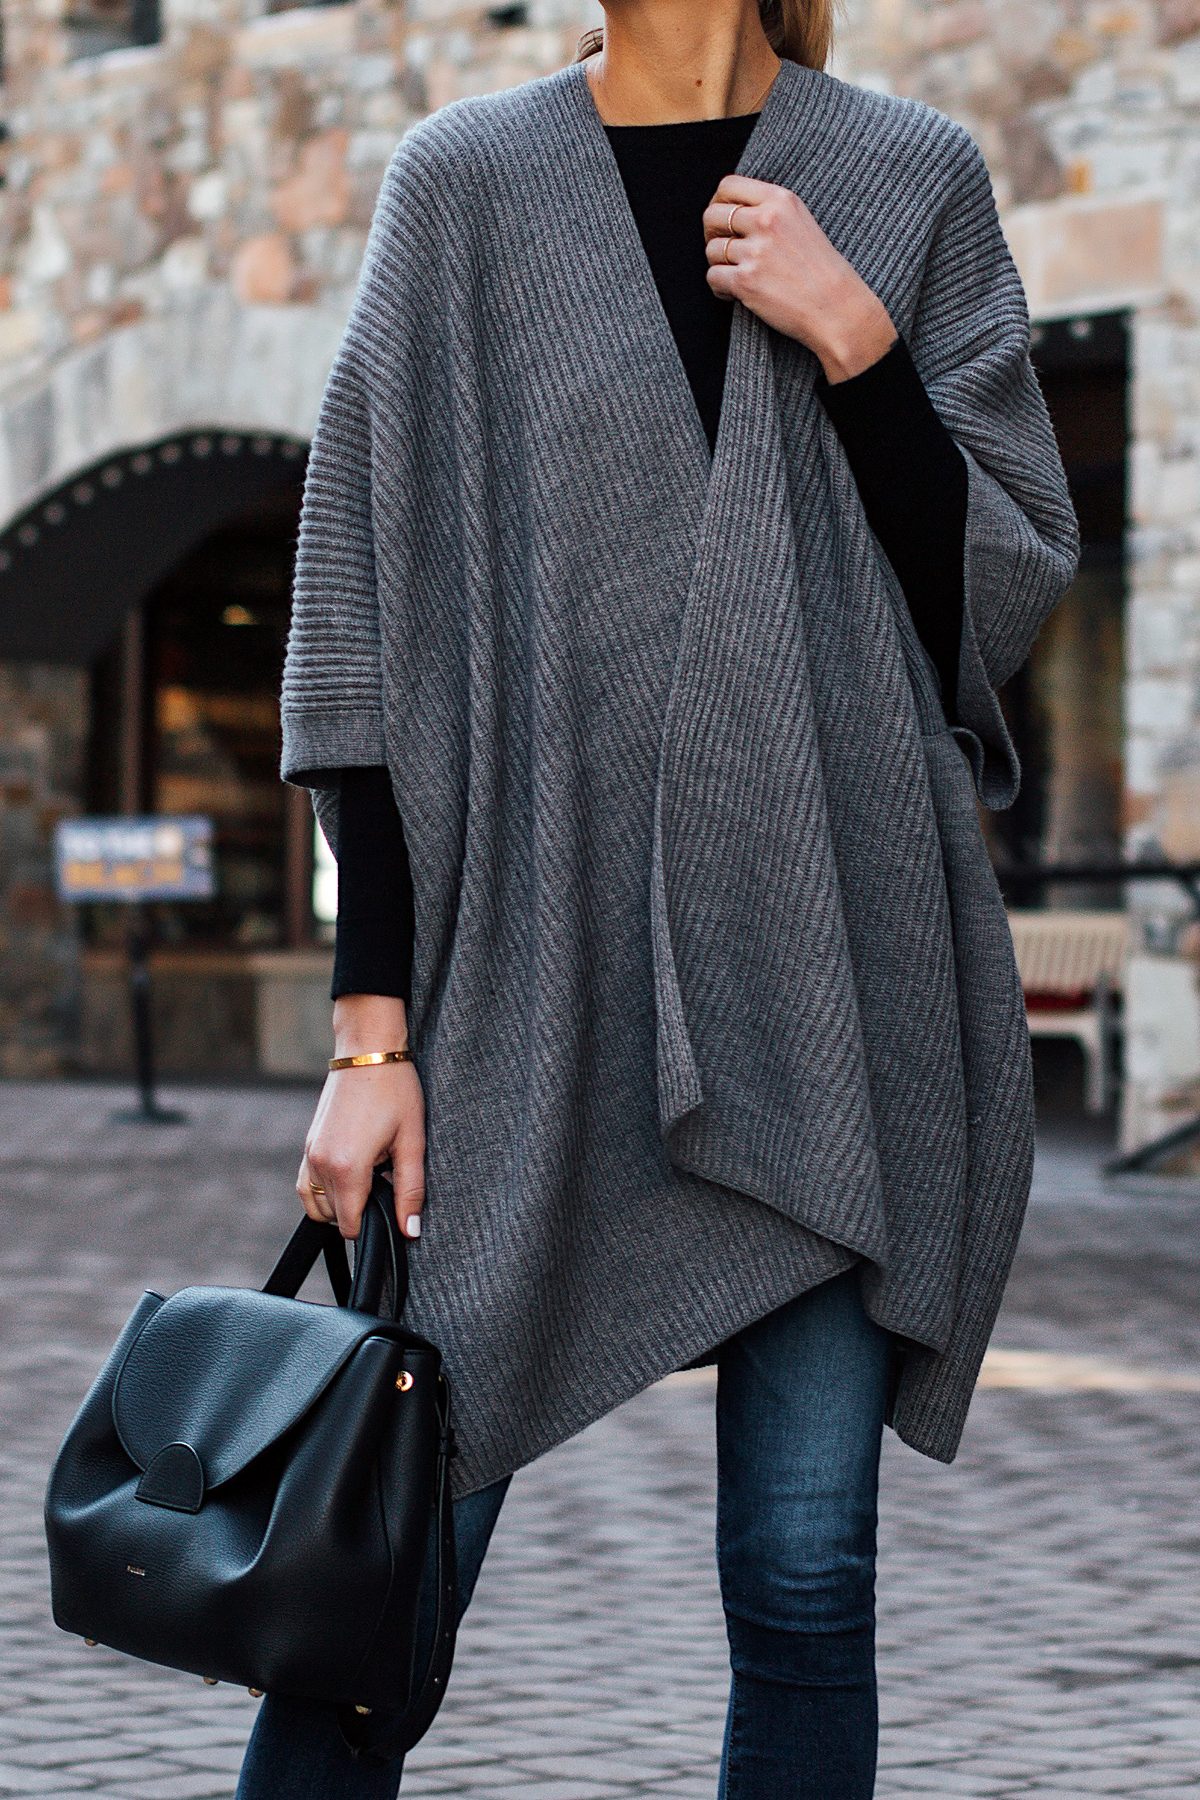 Woman Wearing All Saints Grey Sweater Poncho Denim Skinny Jeans Polene Black Handbag Fashion Jackson San Diego Fashion Blogger Street Style